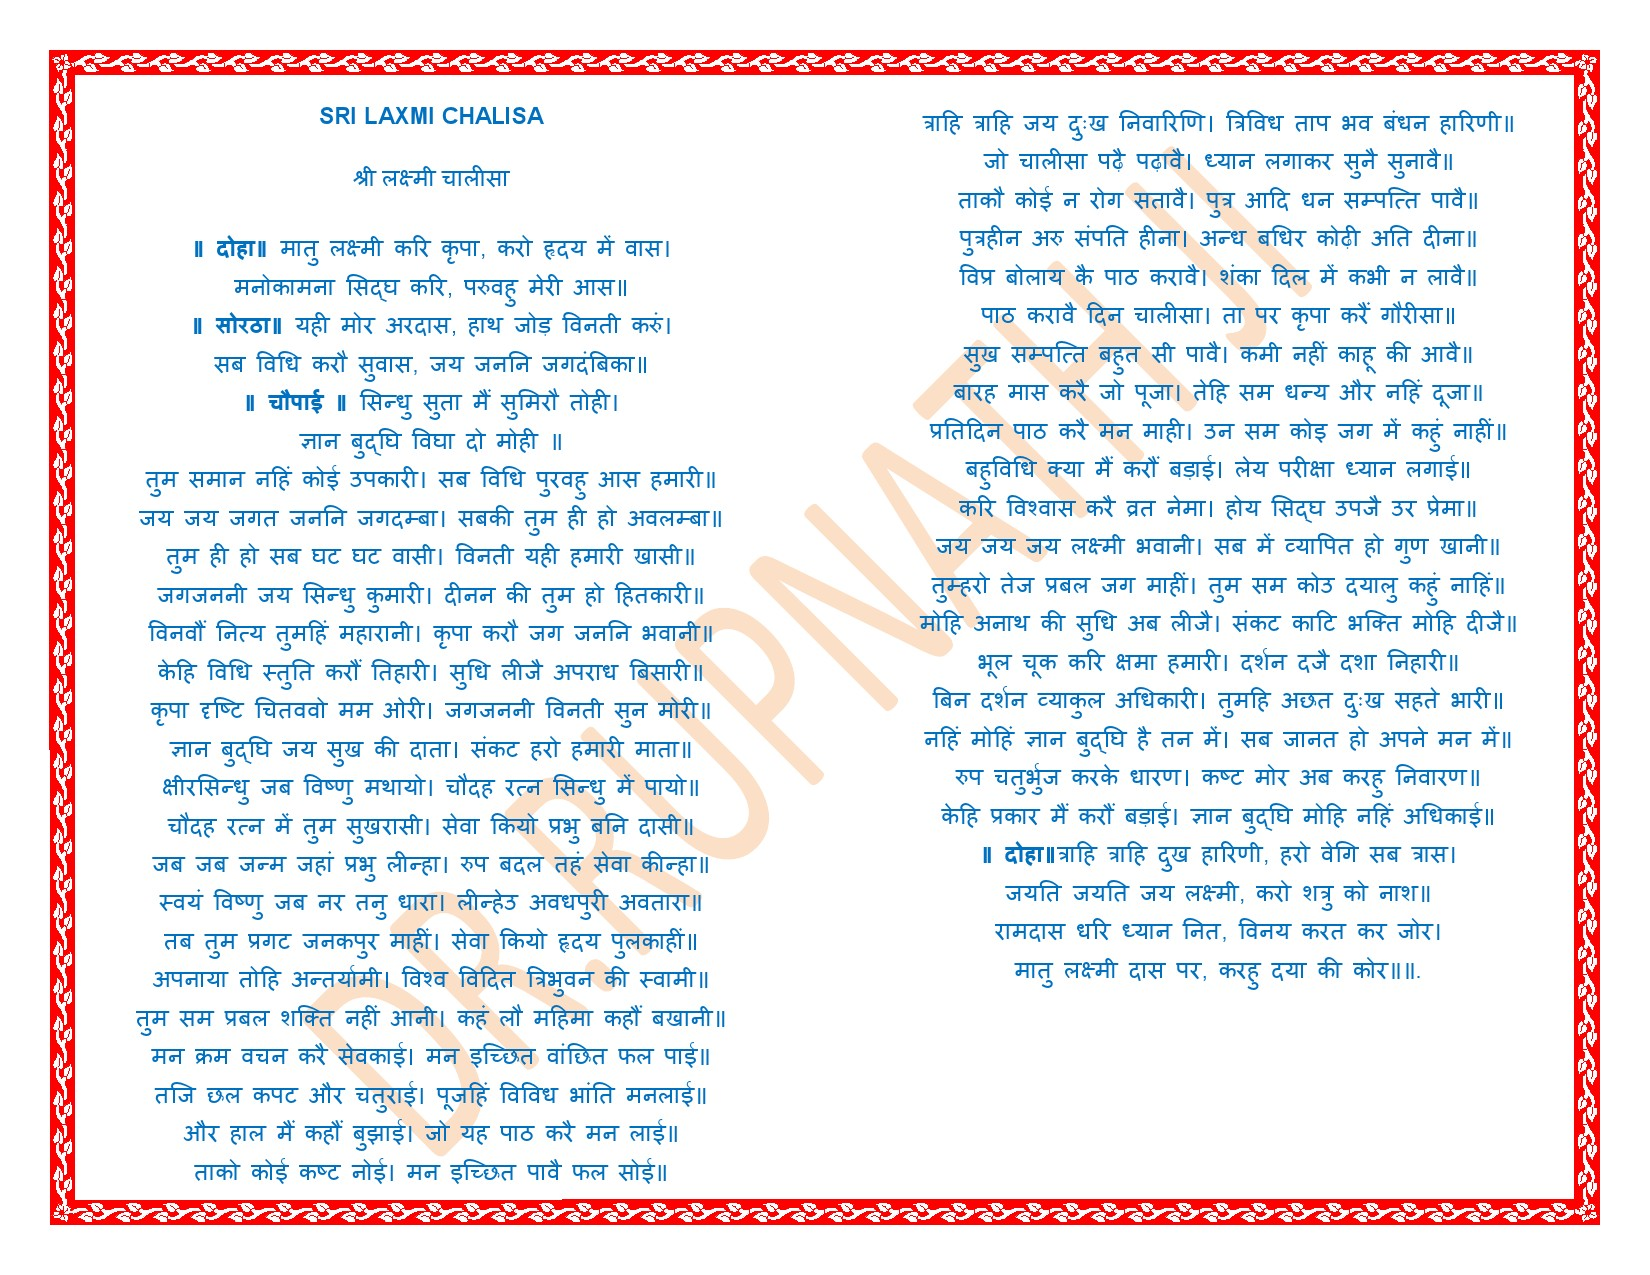 Horoscope in hindi download free hindi free capricorn yearly horoscope in hindi download free hindi free capricorn yearly horoscope 2013 geenschuldenfo Image collections